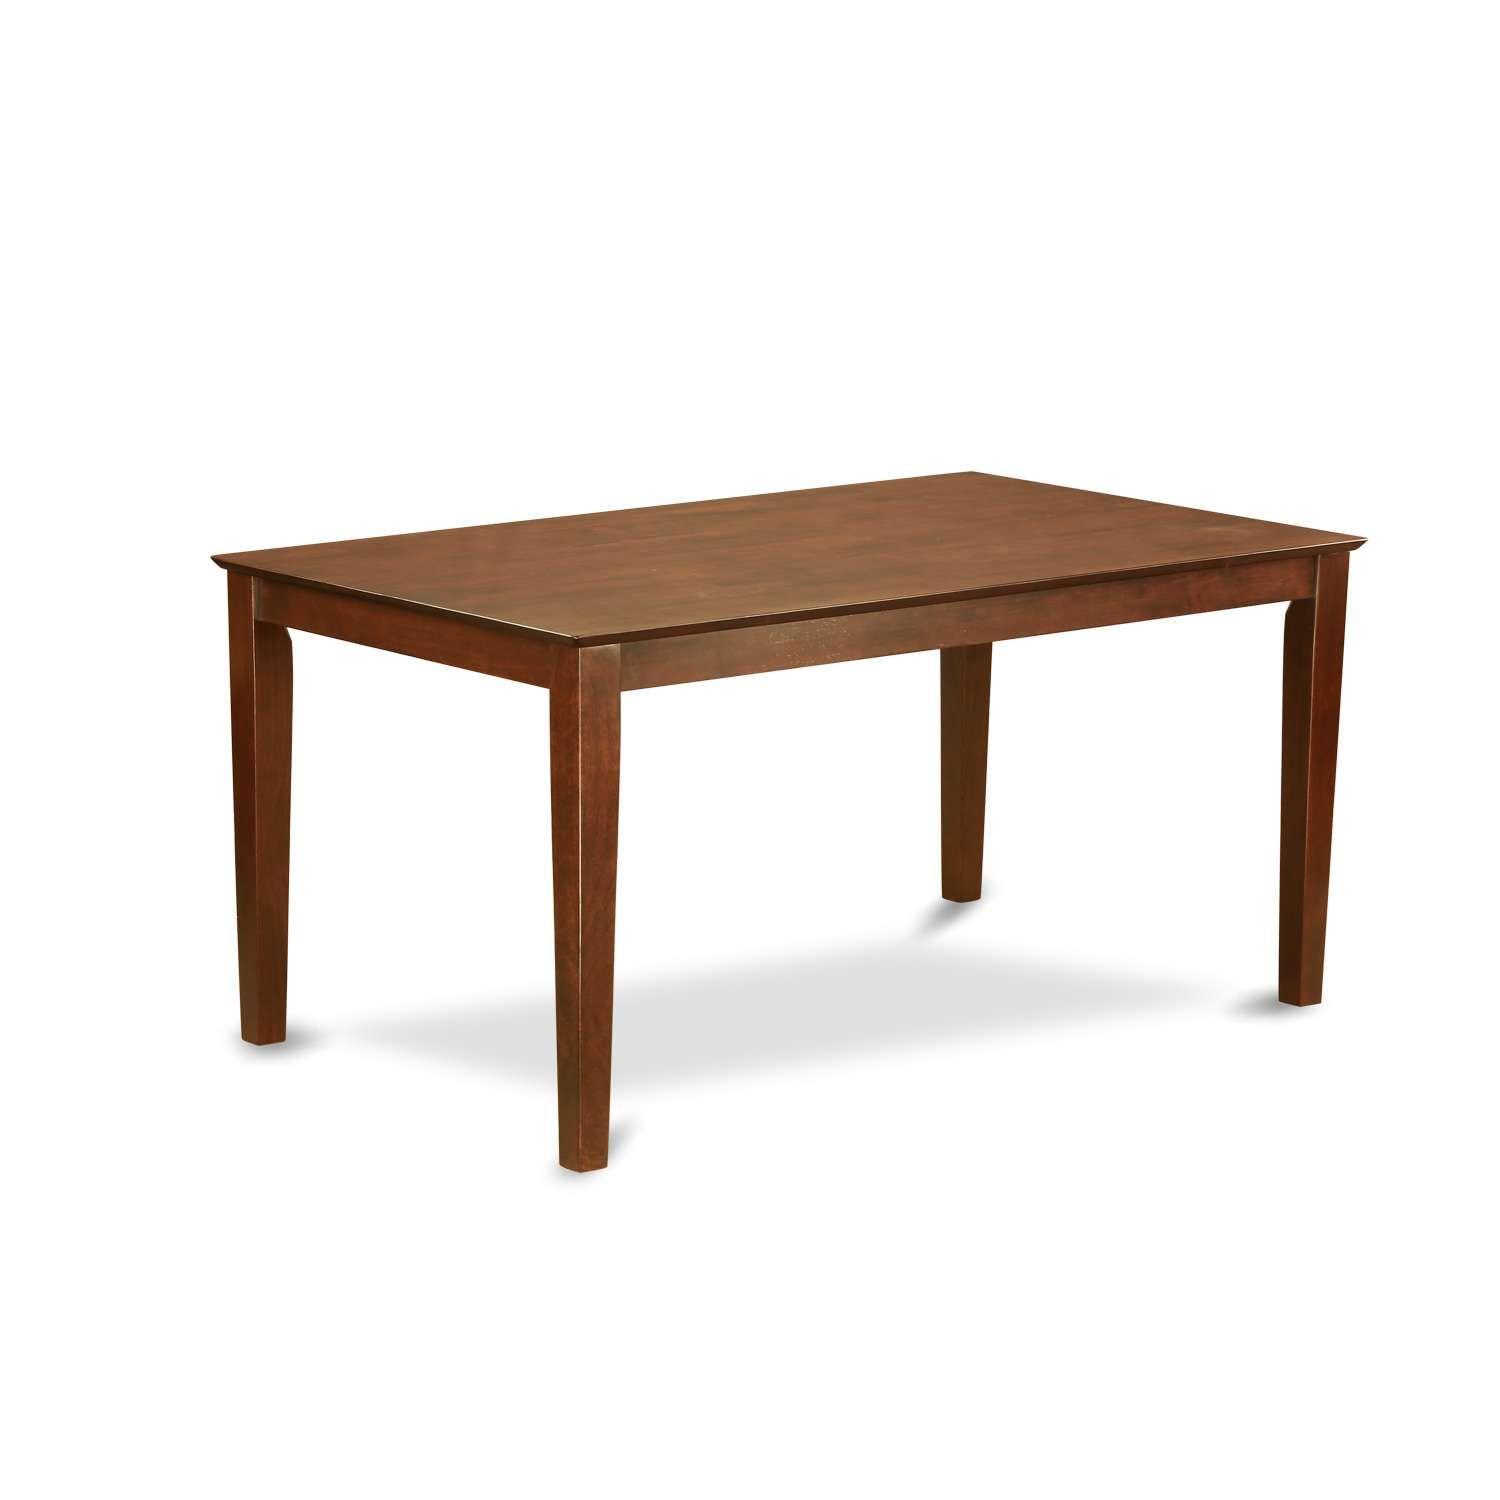 East West Furniture Capri Rectangular Dining Table 36 X60 With